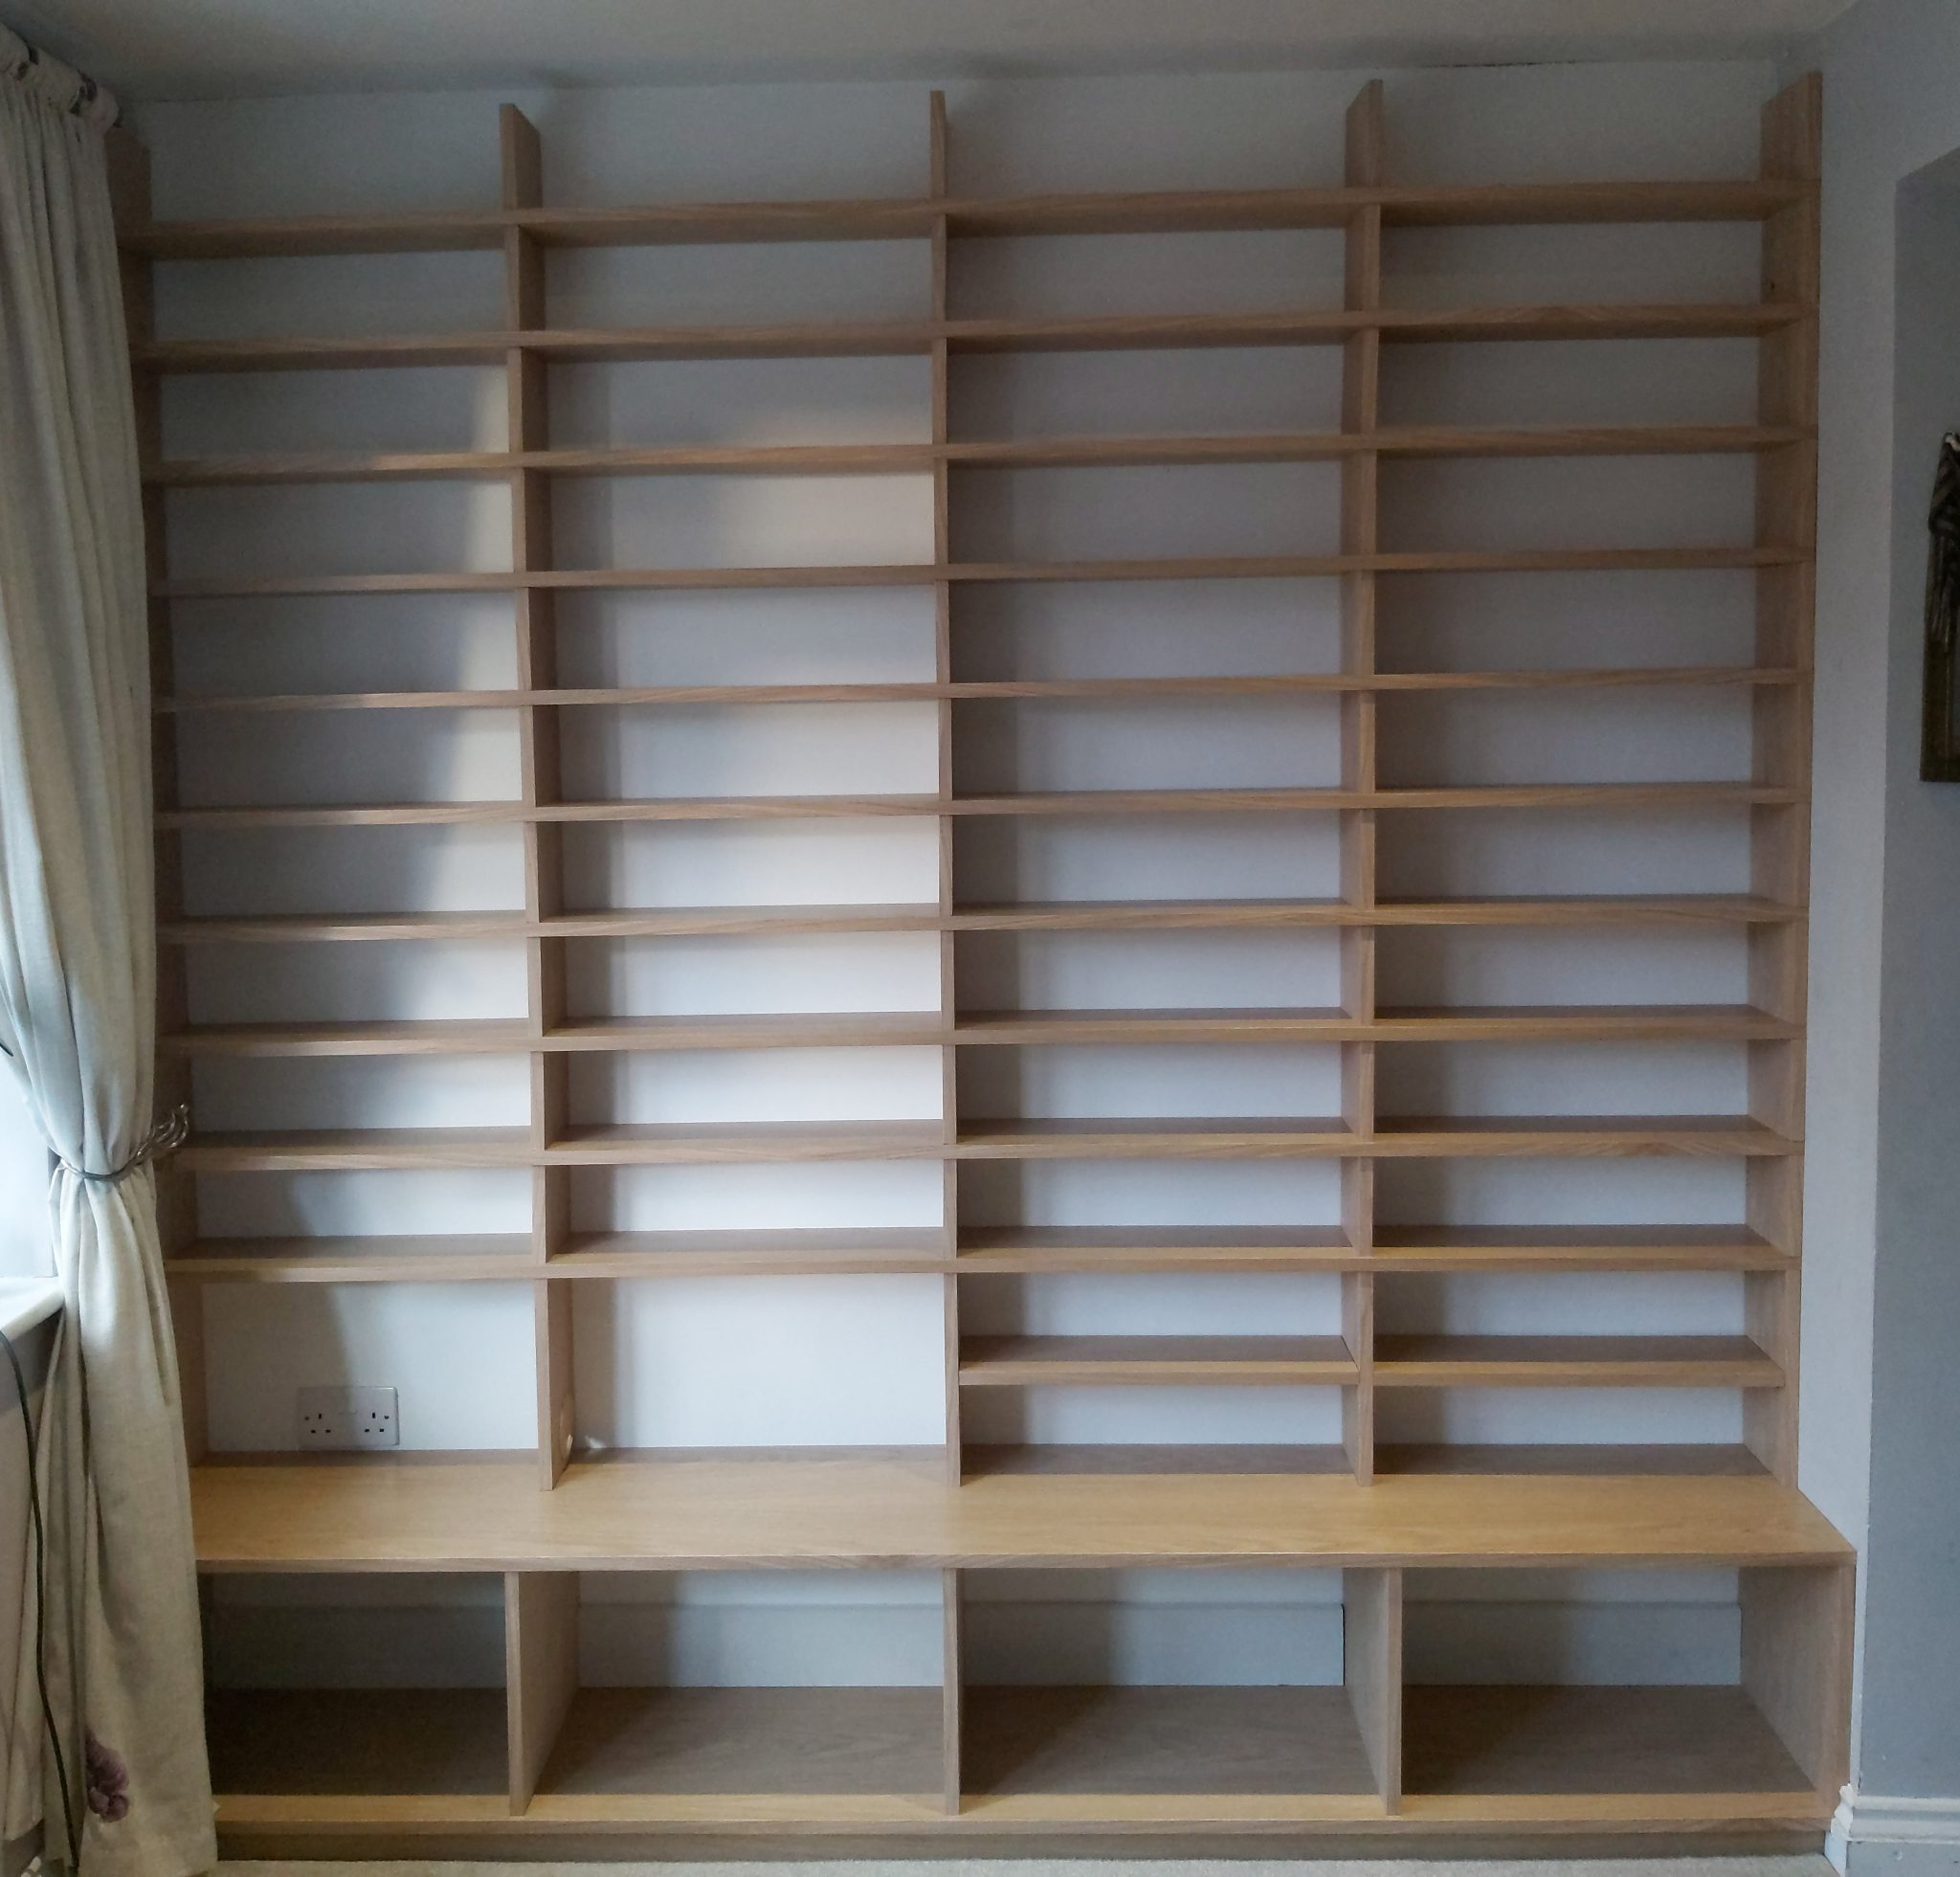 Almost completed shelving